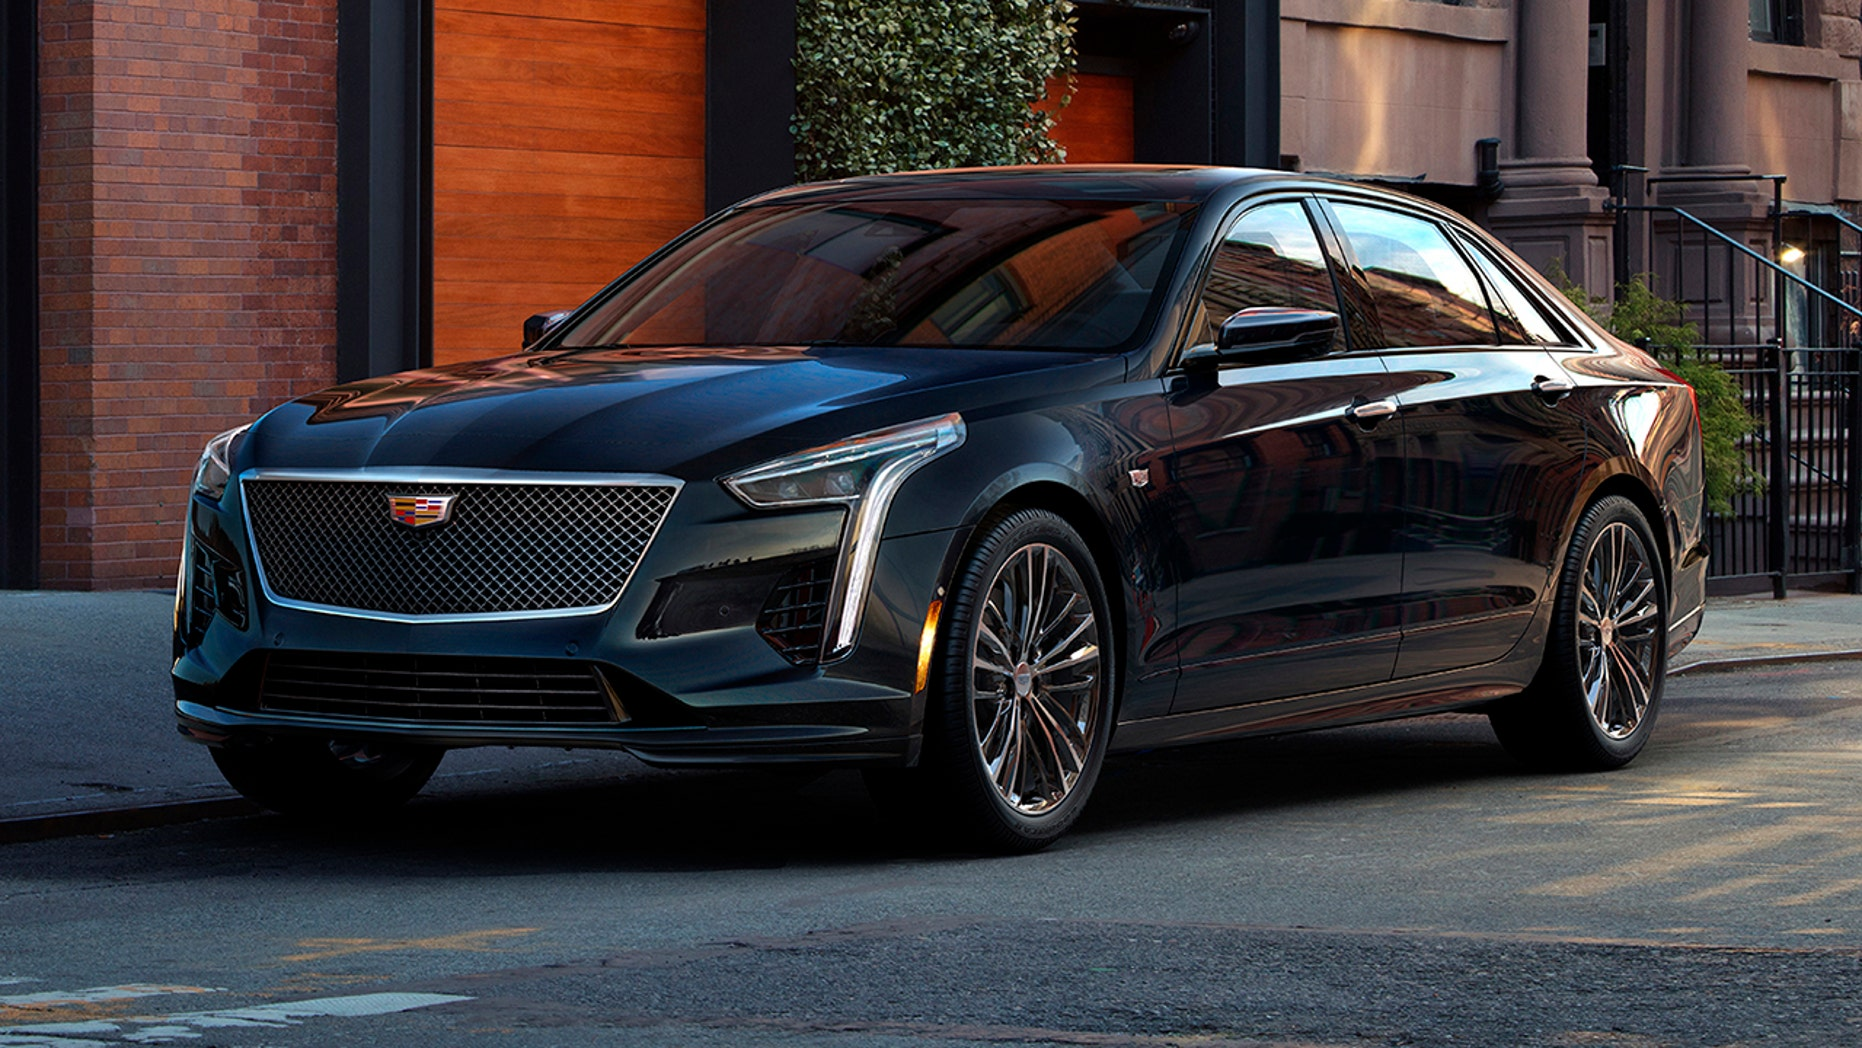 Cadillac Introduces The First Ever 2019 CT6 V Sport, Boasting An Estimated  550